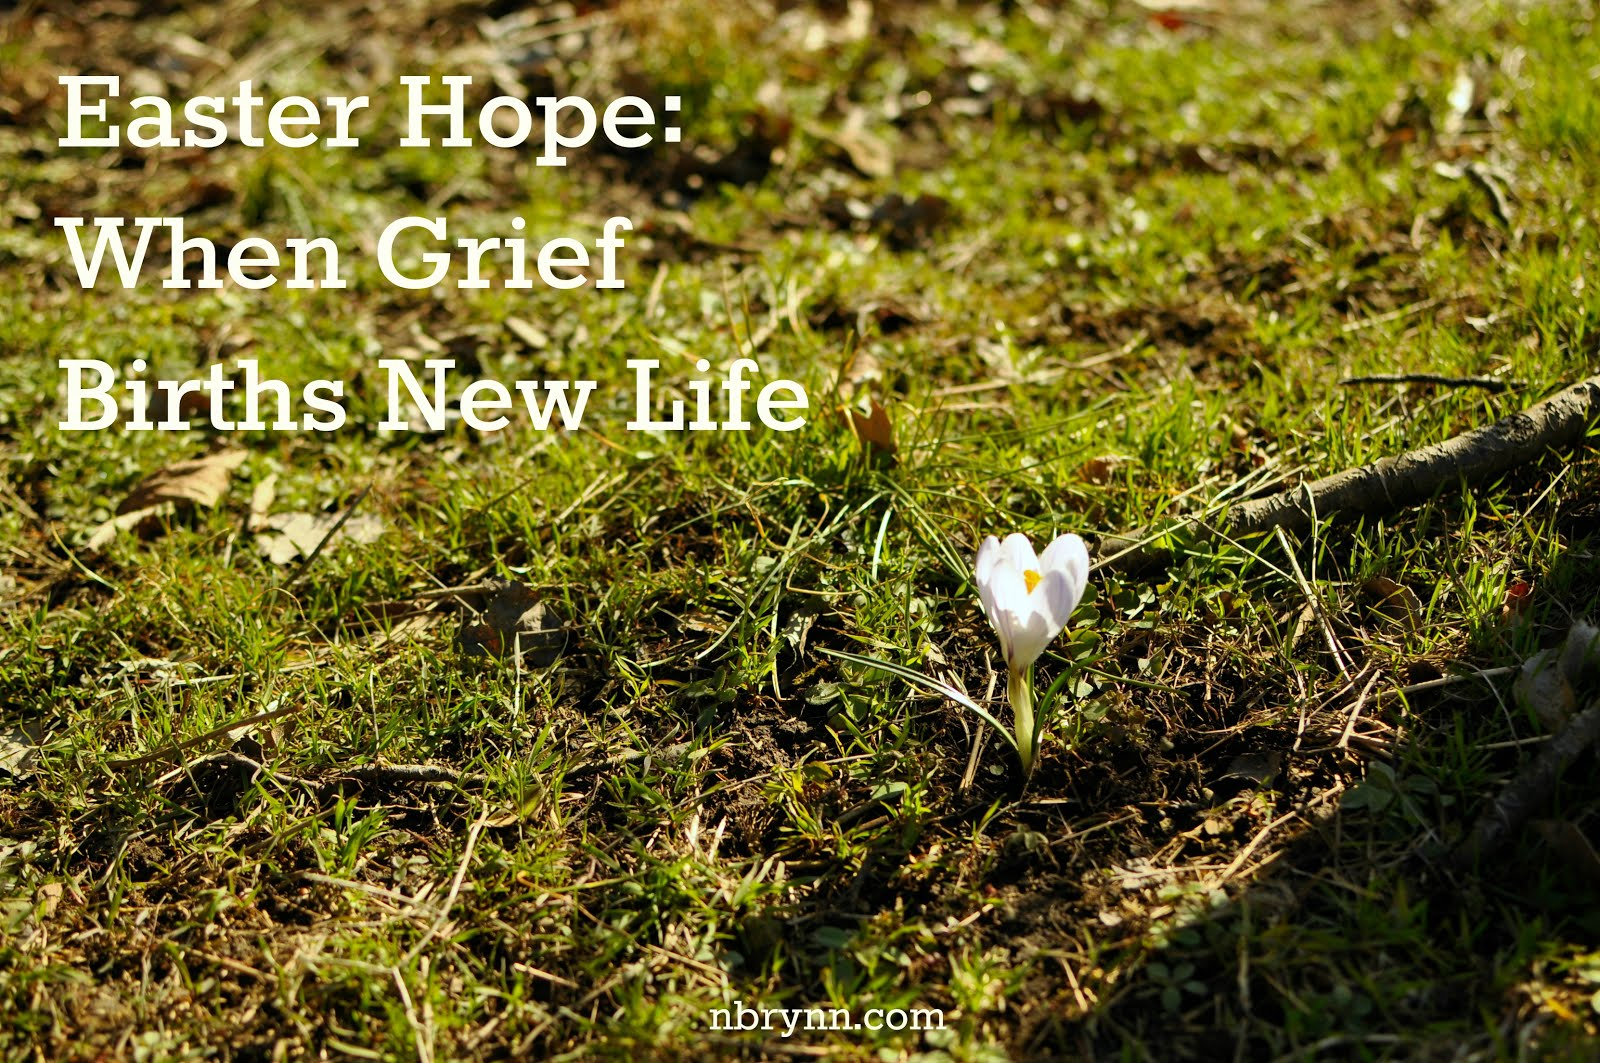 Even in Grief, There is Hope